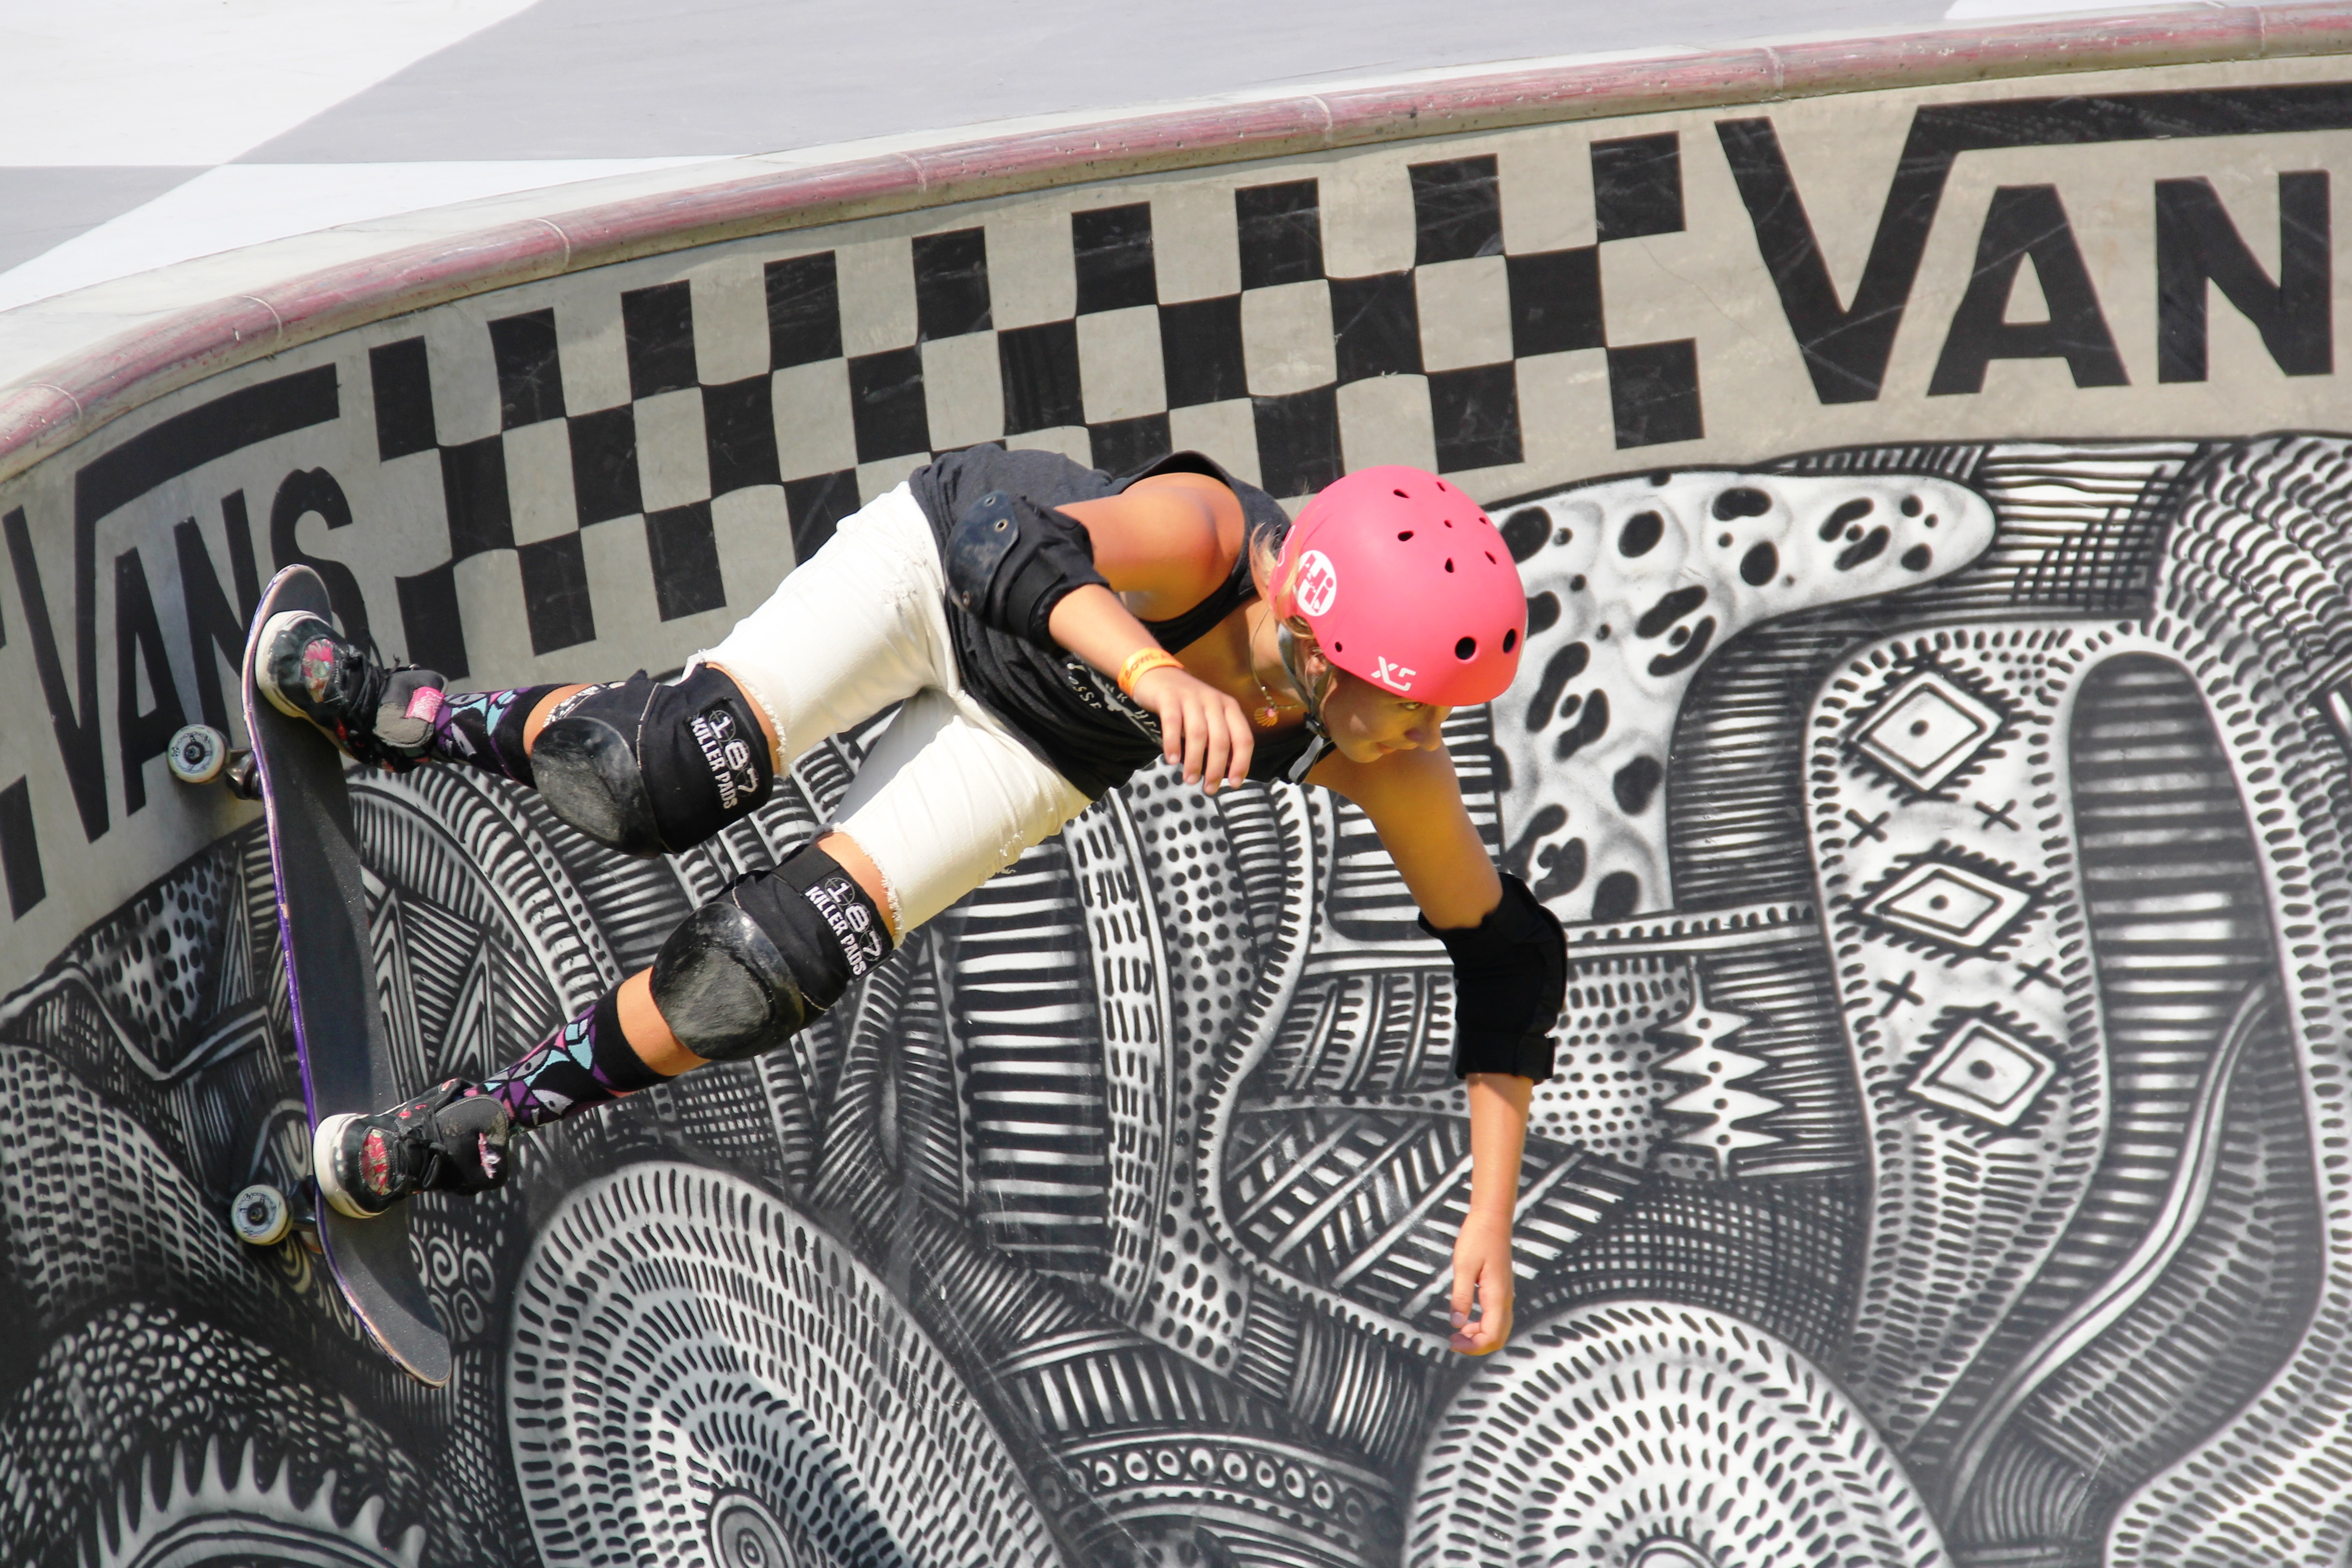 Fifteen-year-old Jordyn Barratt, from Encinitas, was one of three female amateur skaters to compete in the Vans Skateboard tournament at the US Open of Surfing in Huntington Beach. She's also a vital member of the Pink Helmet Posse. Photo: Sean Robb